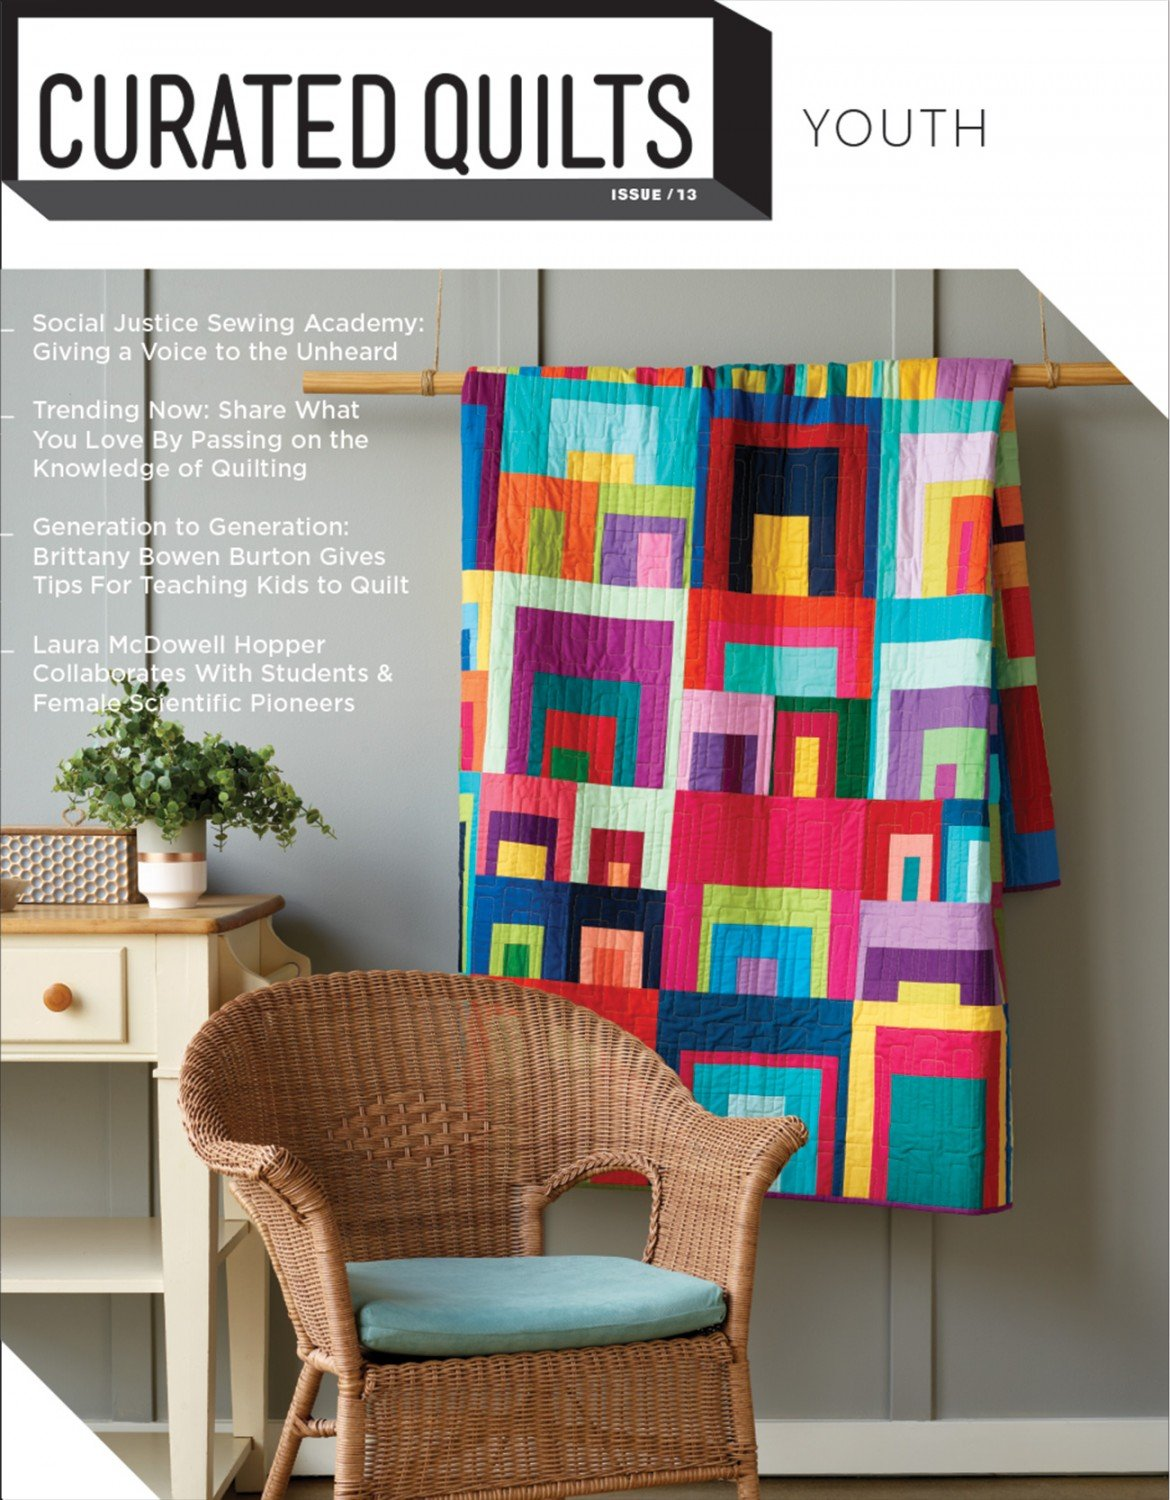 Curated Quilts Quarterly Journal Issue 13